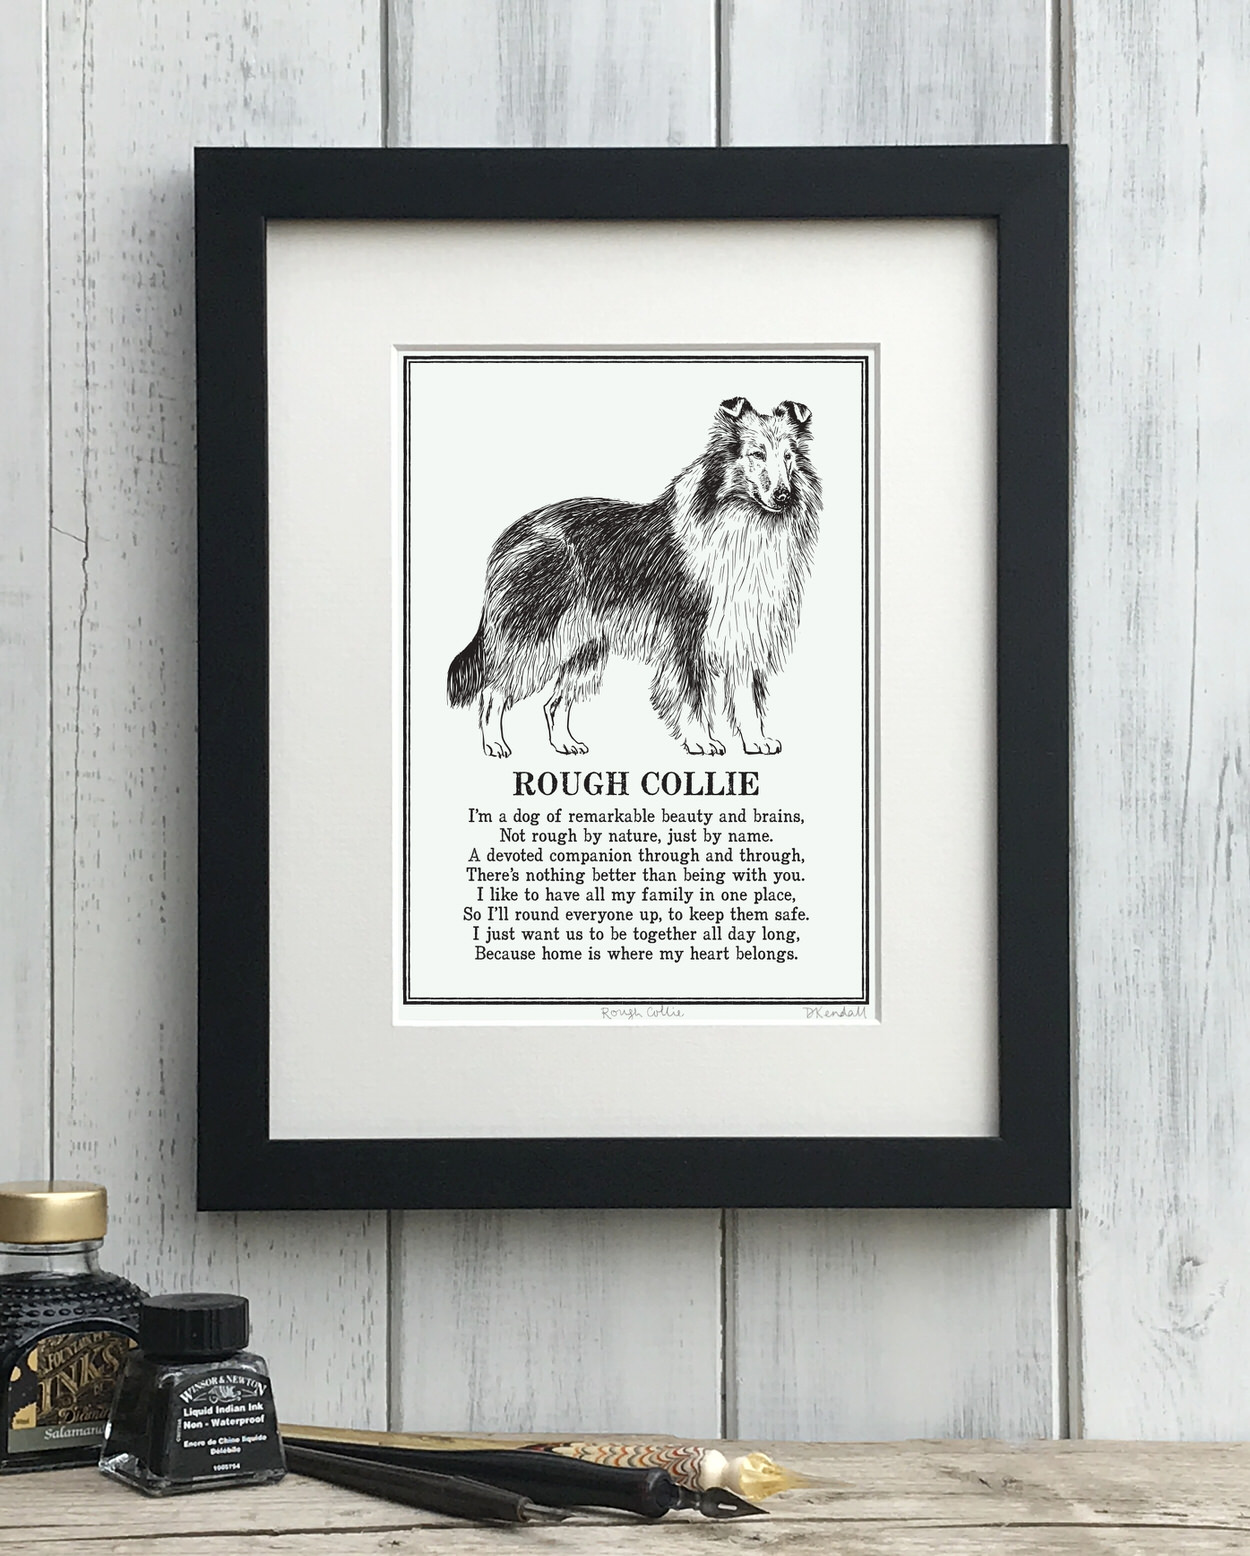 Rough Collie print illustrated poem by The Enlightened Hound